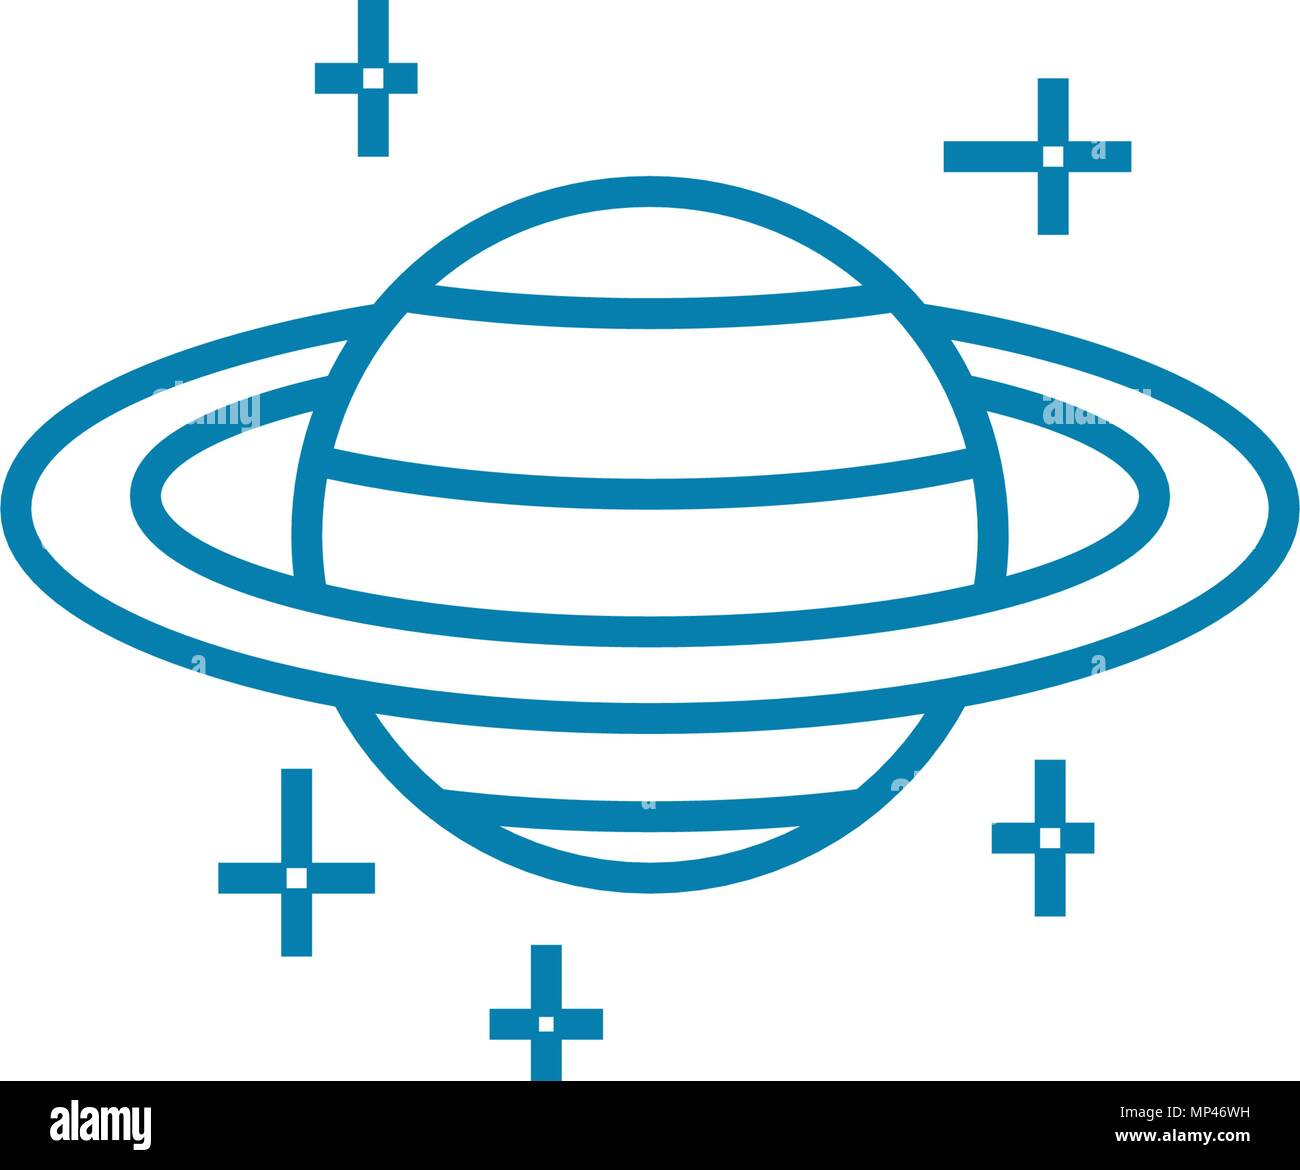 Earth Observation Stock Vector Images  Alamy